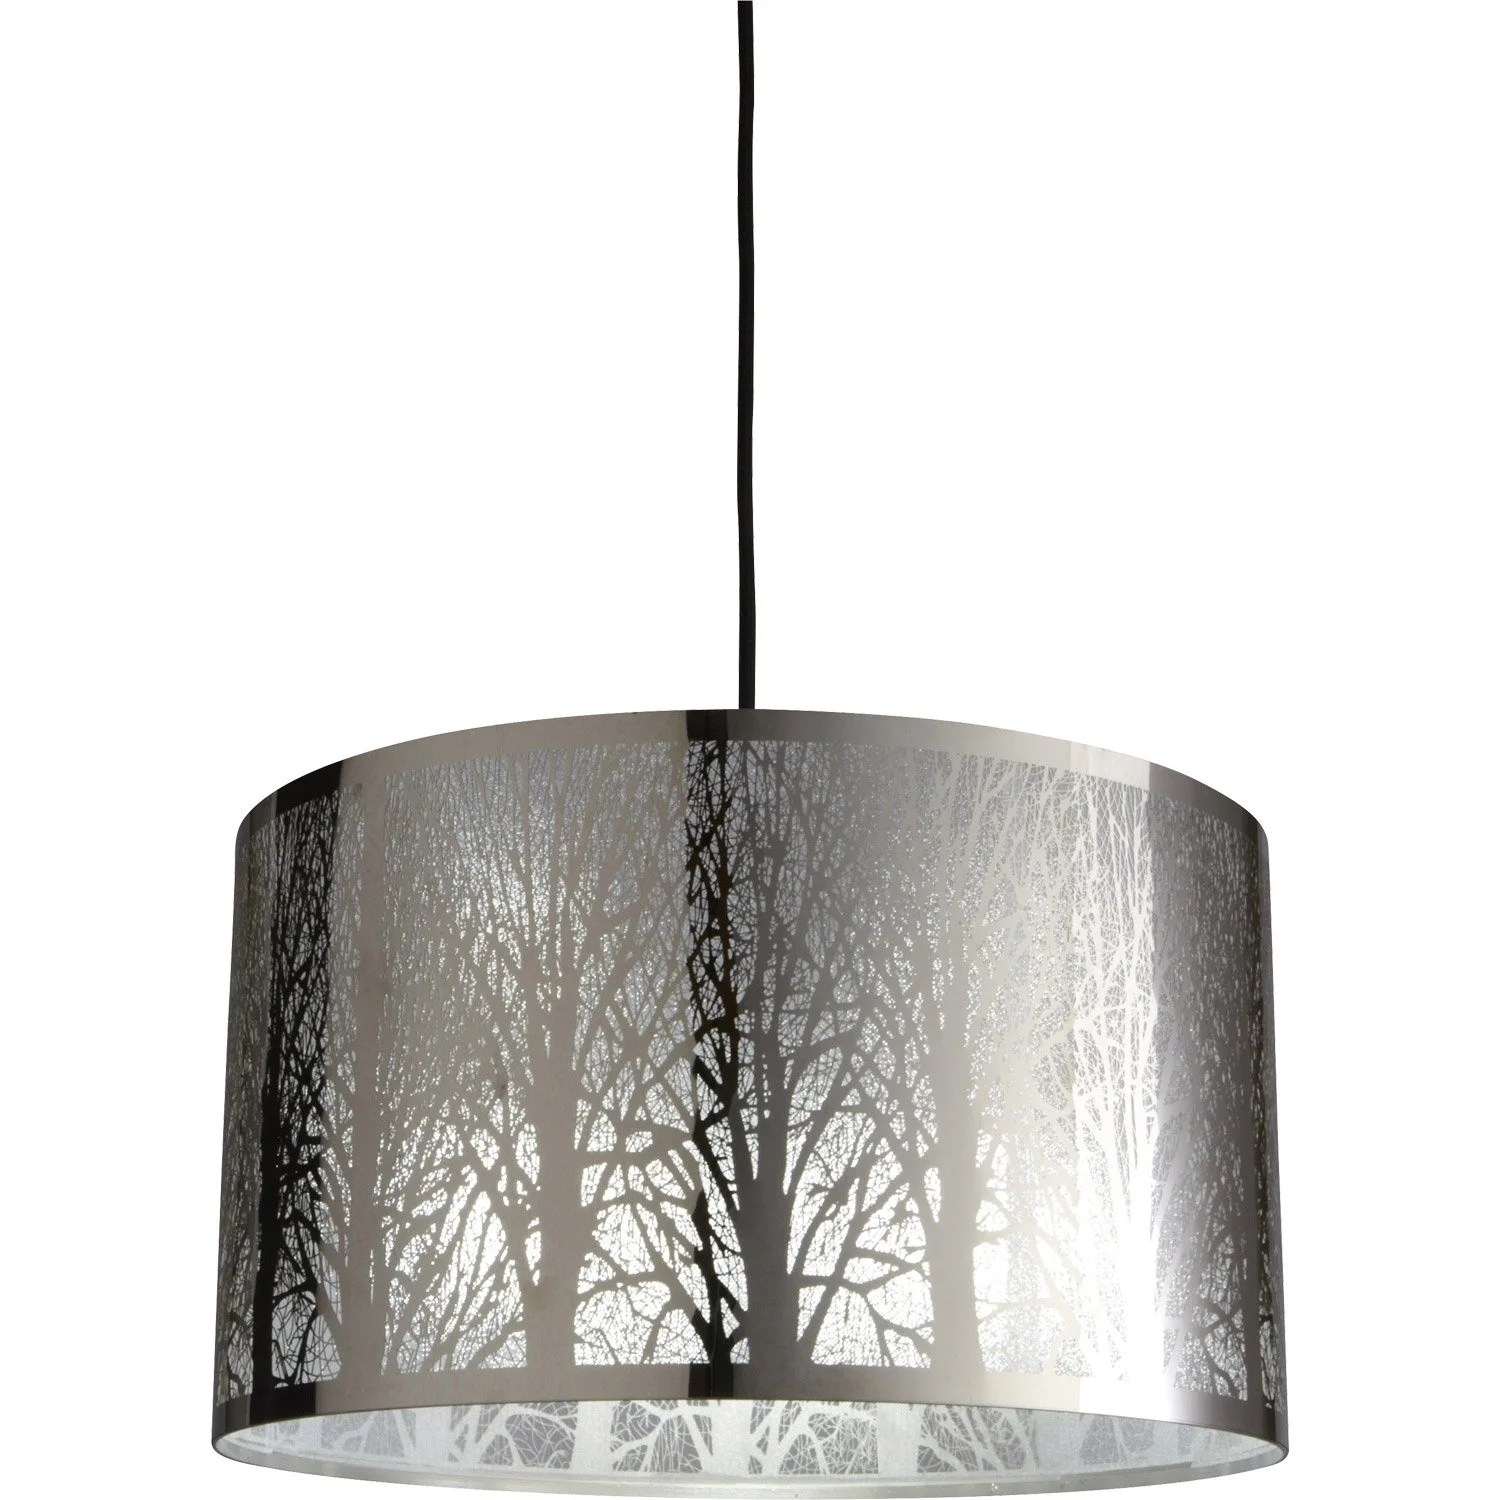 Suspension Moderne Salon Suspension Moderne Forest Métal Noir 1 X 60 W Inspire